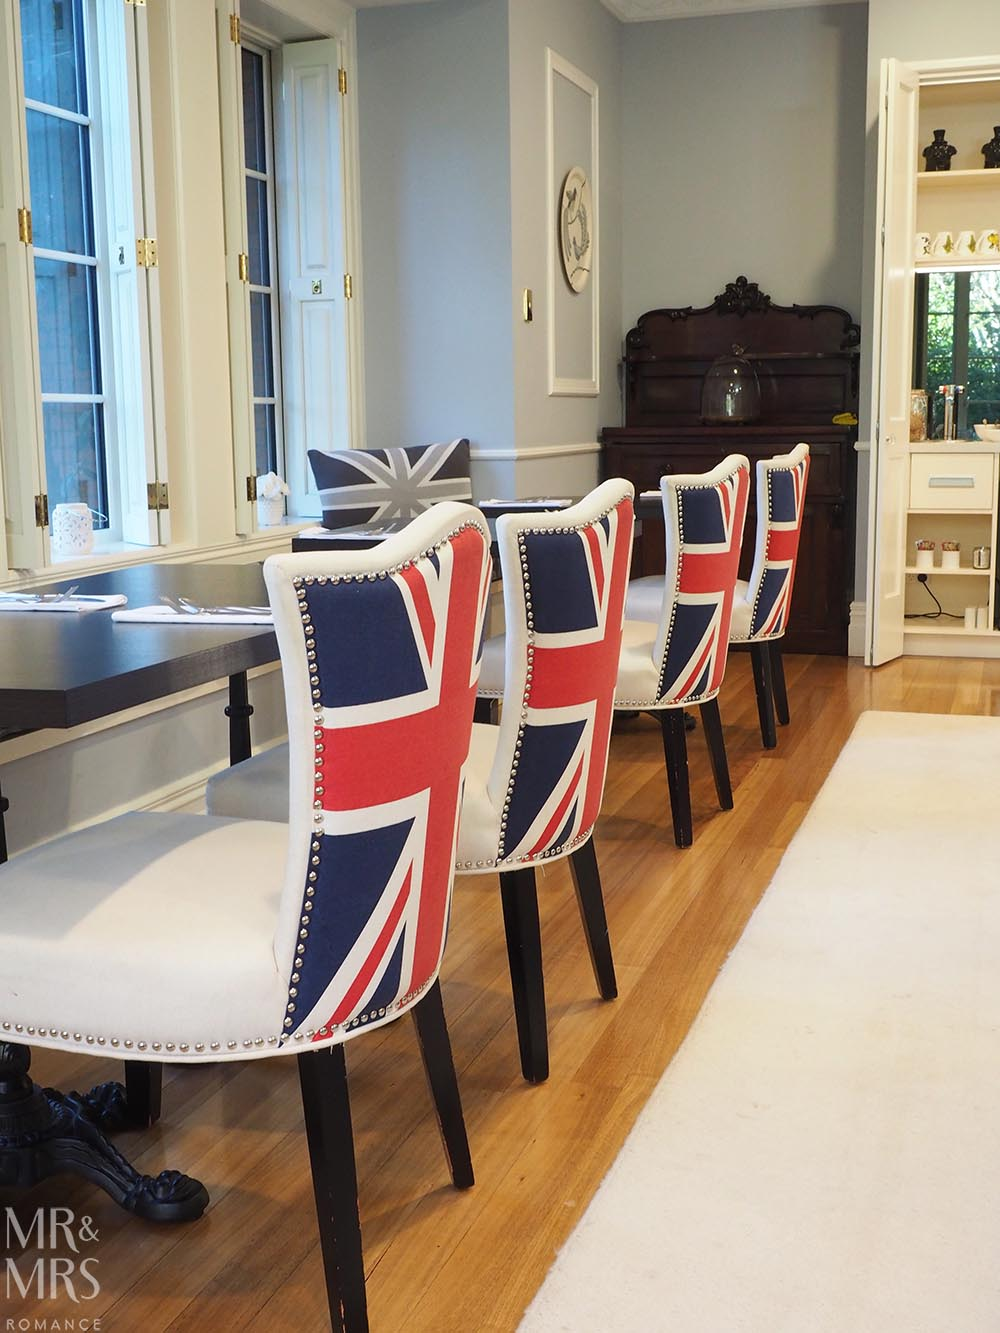 Henley Hotel - dining room Union Jack chairs